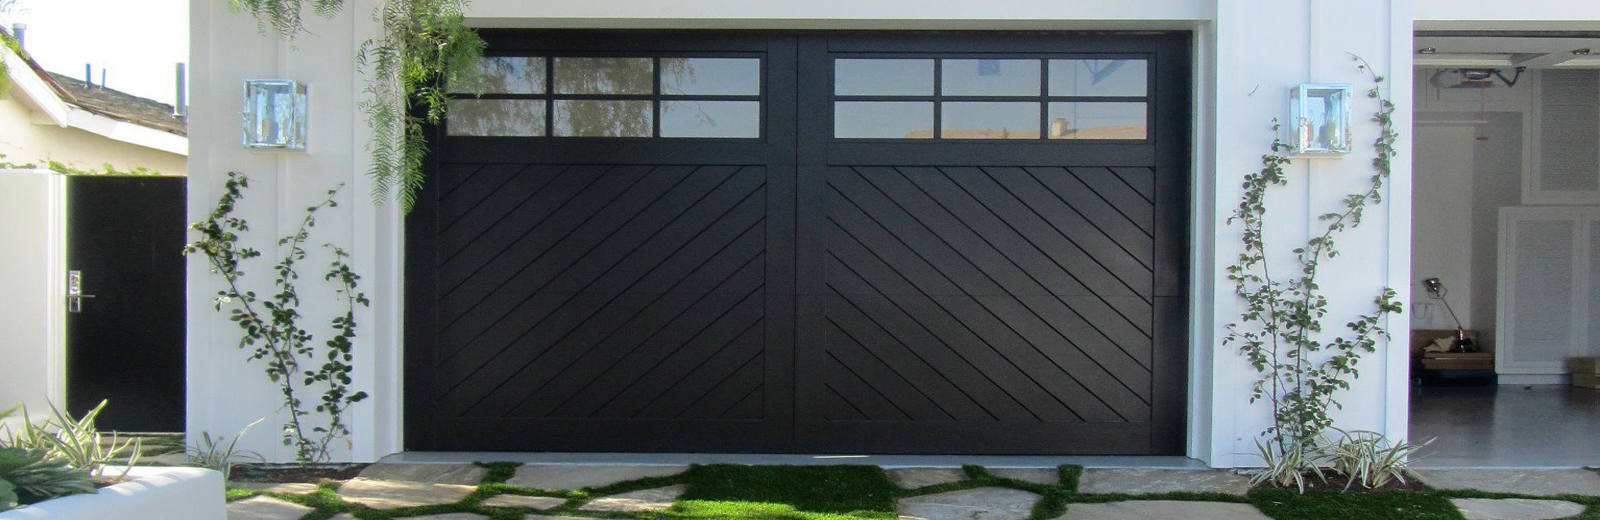 Garage Door Services A M Garage Door And Gate